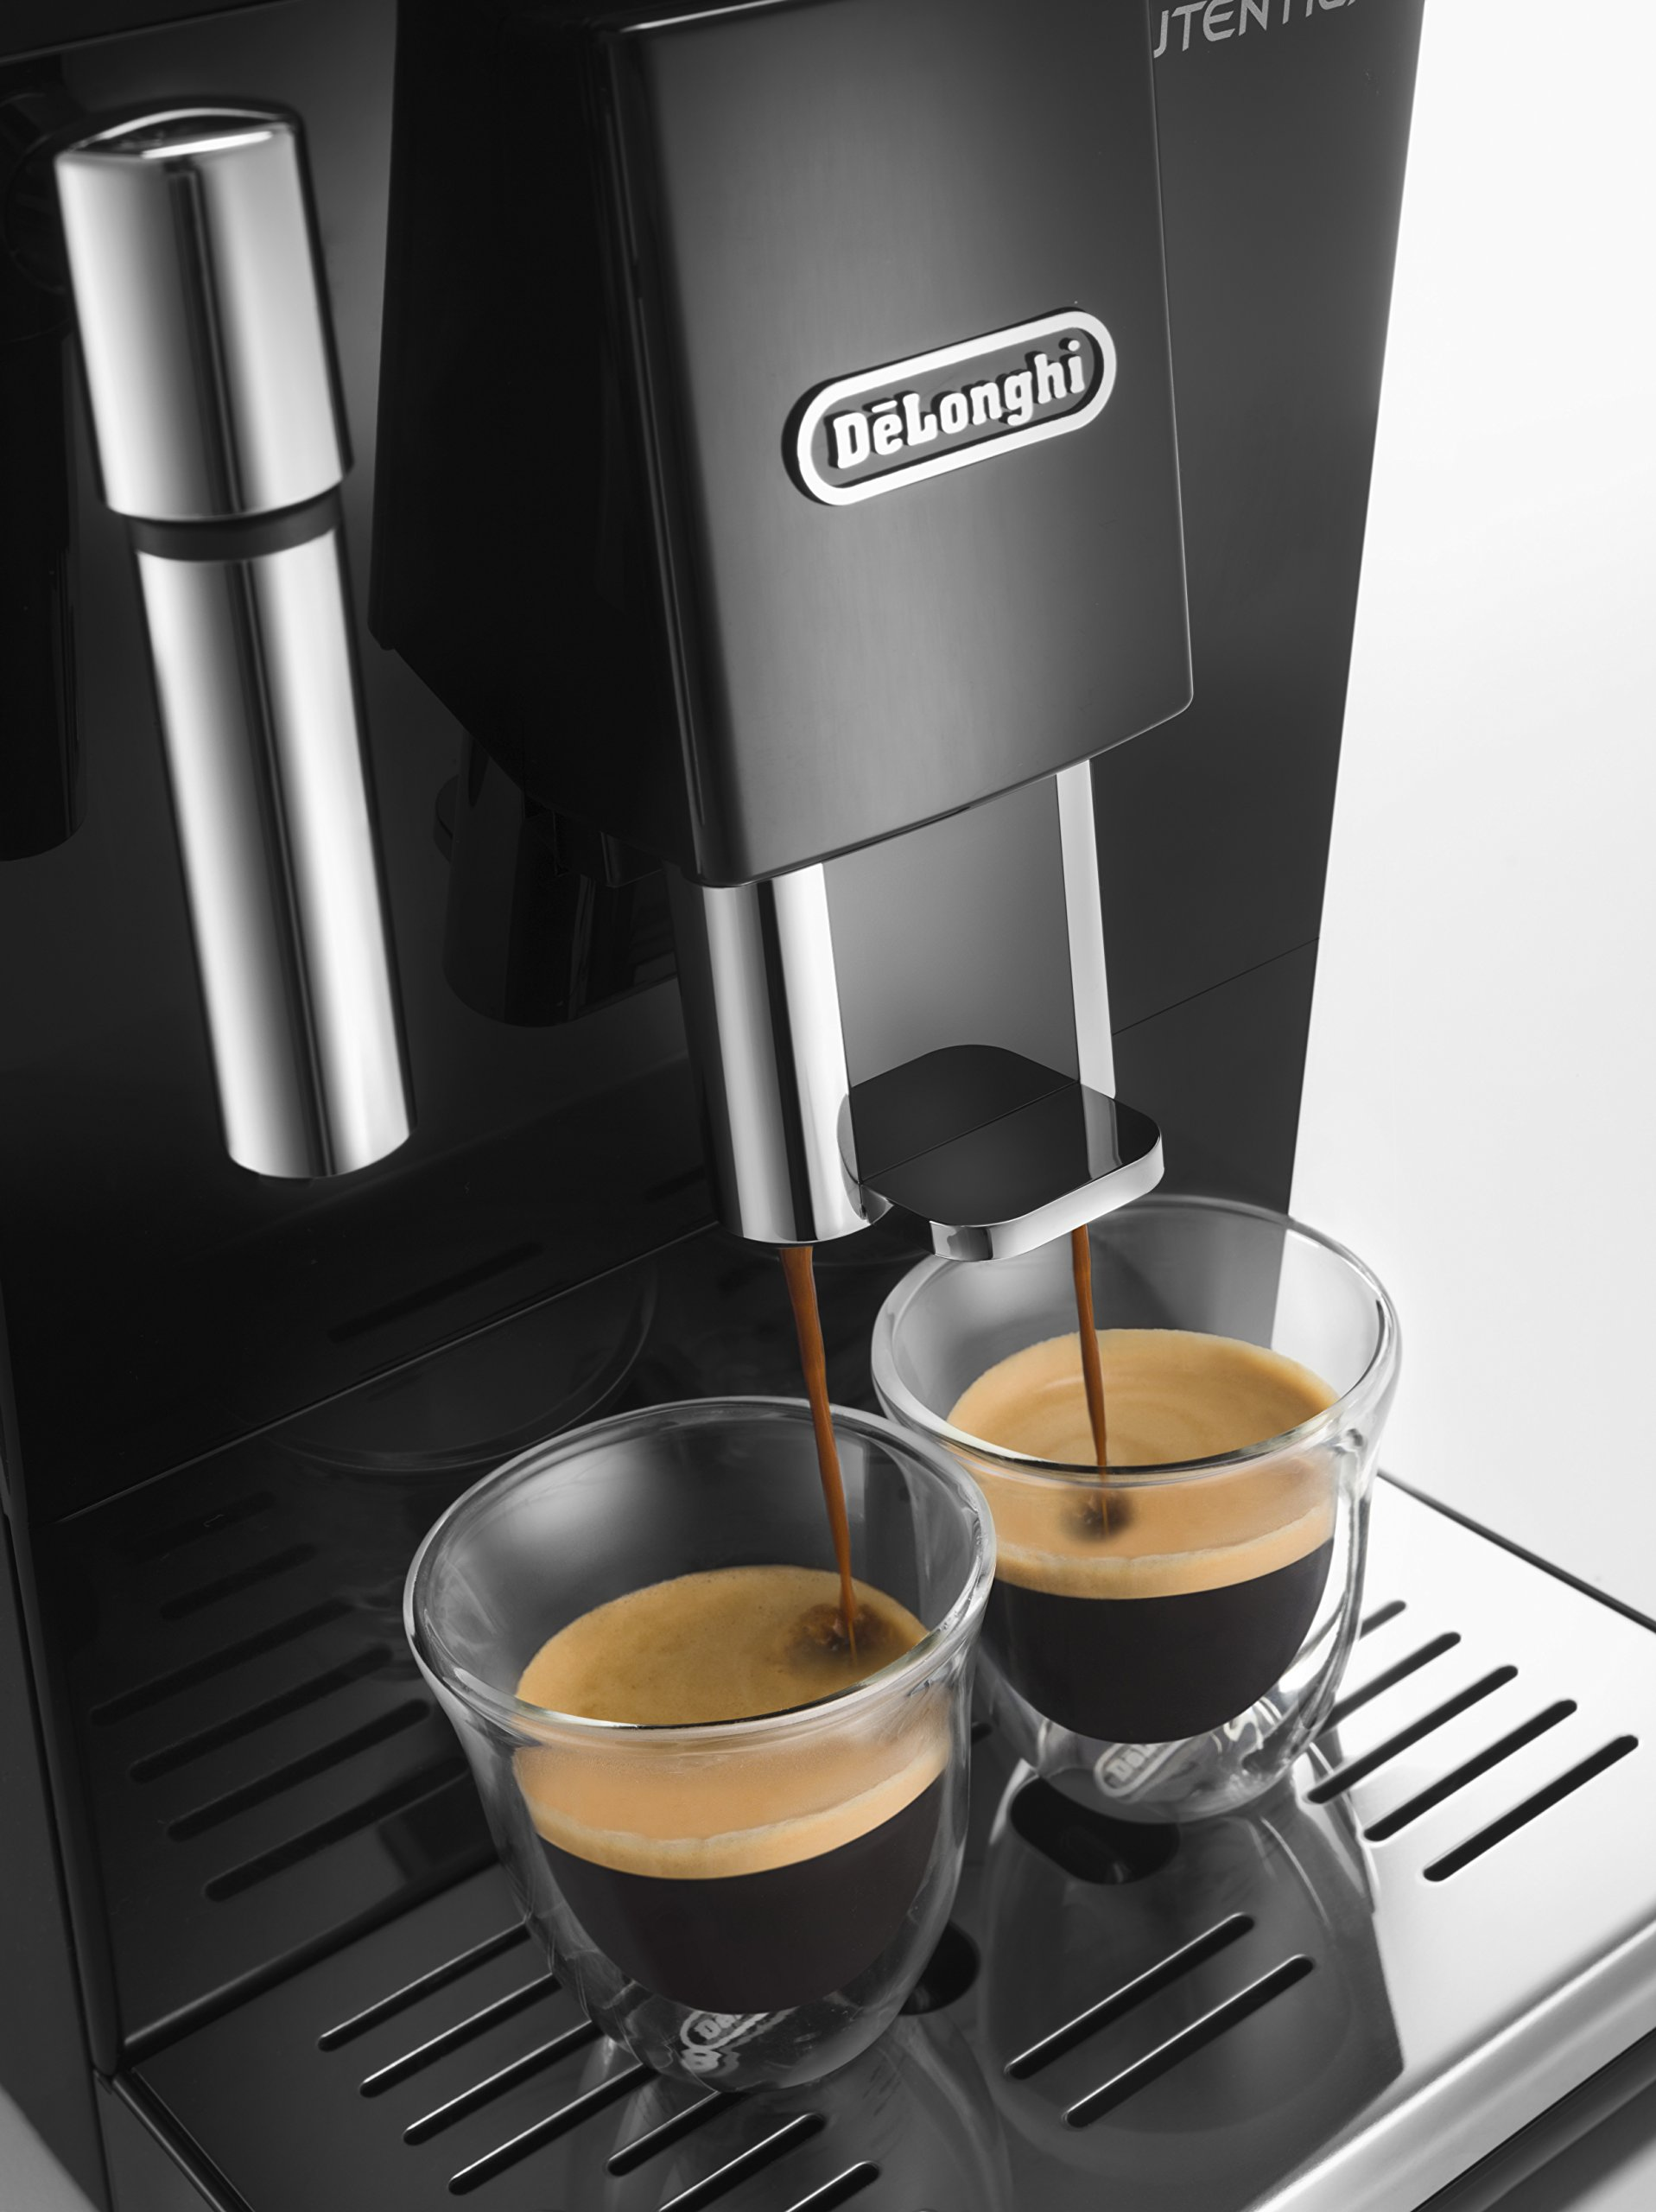 DeLonghi-Autentica-Automatic-Bean-to-Cup-Coffee-Machine